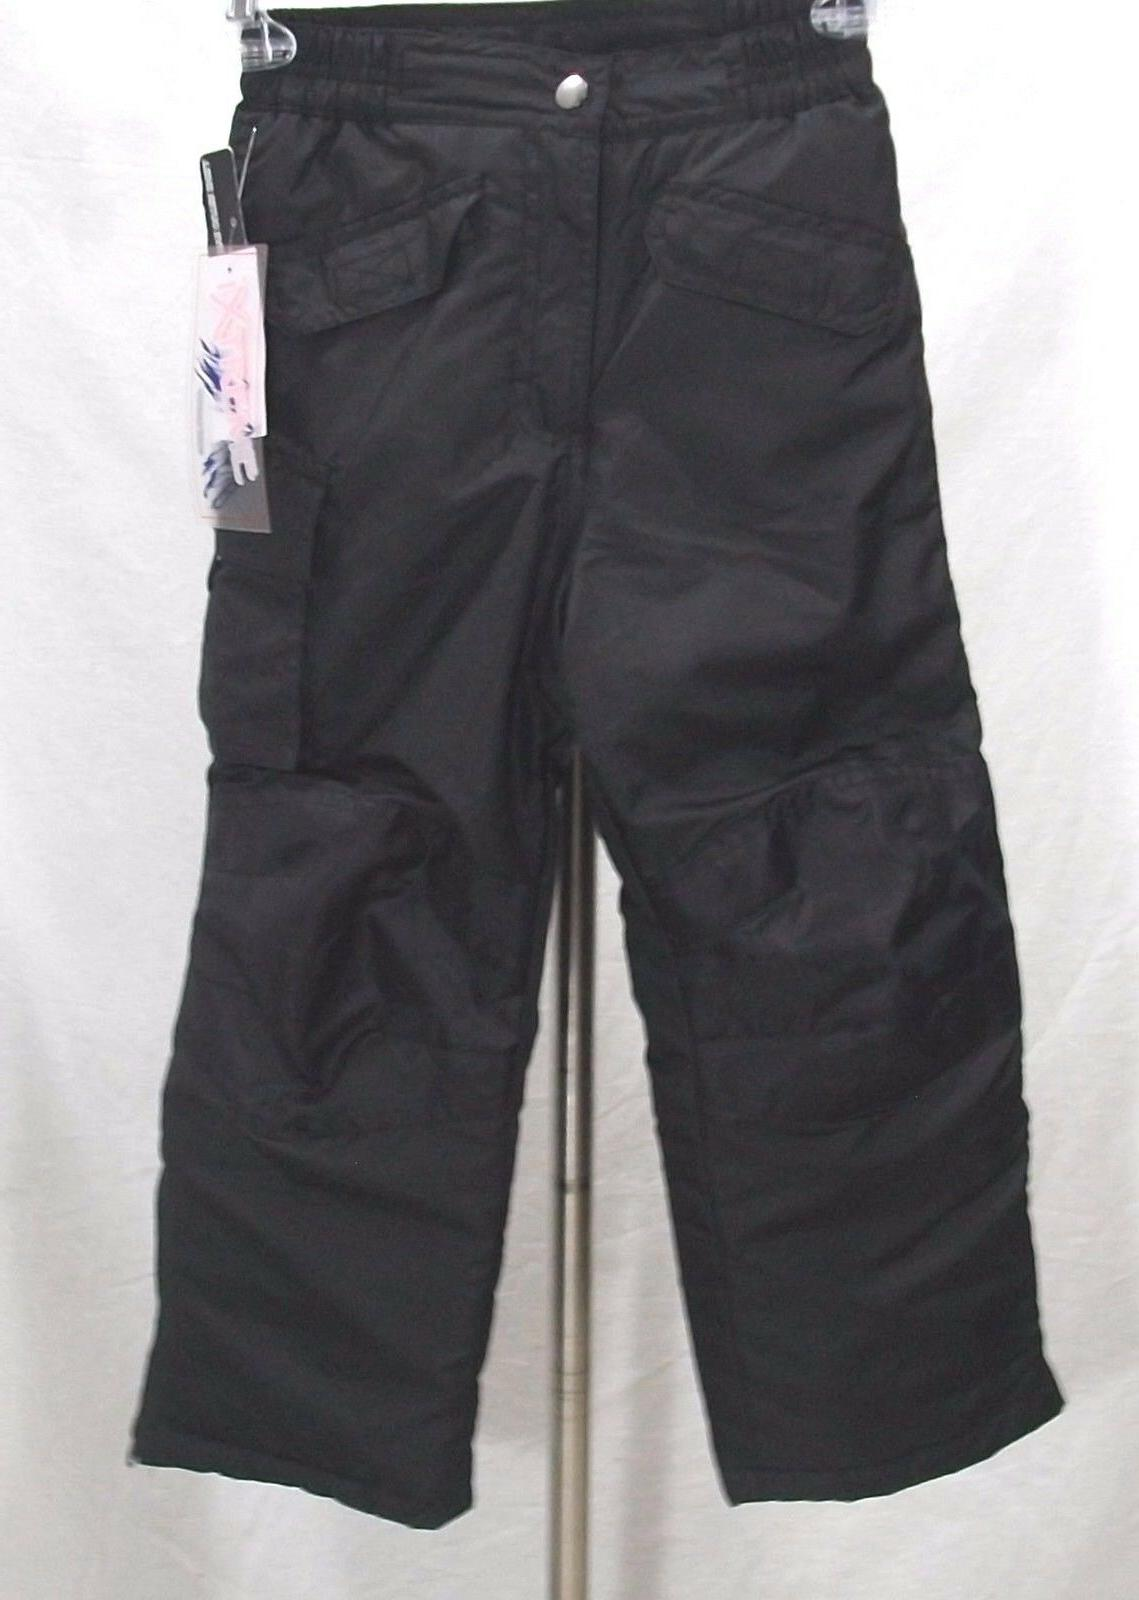 iXtreme KIDS BOYS Water & Wind Resistant Snow Ski Pants Size